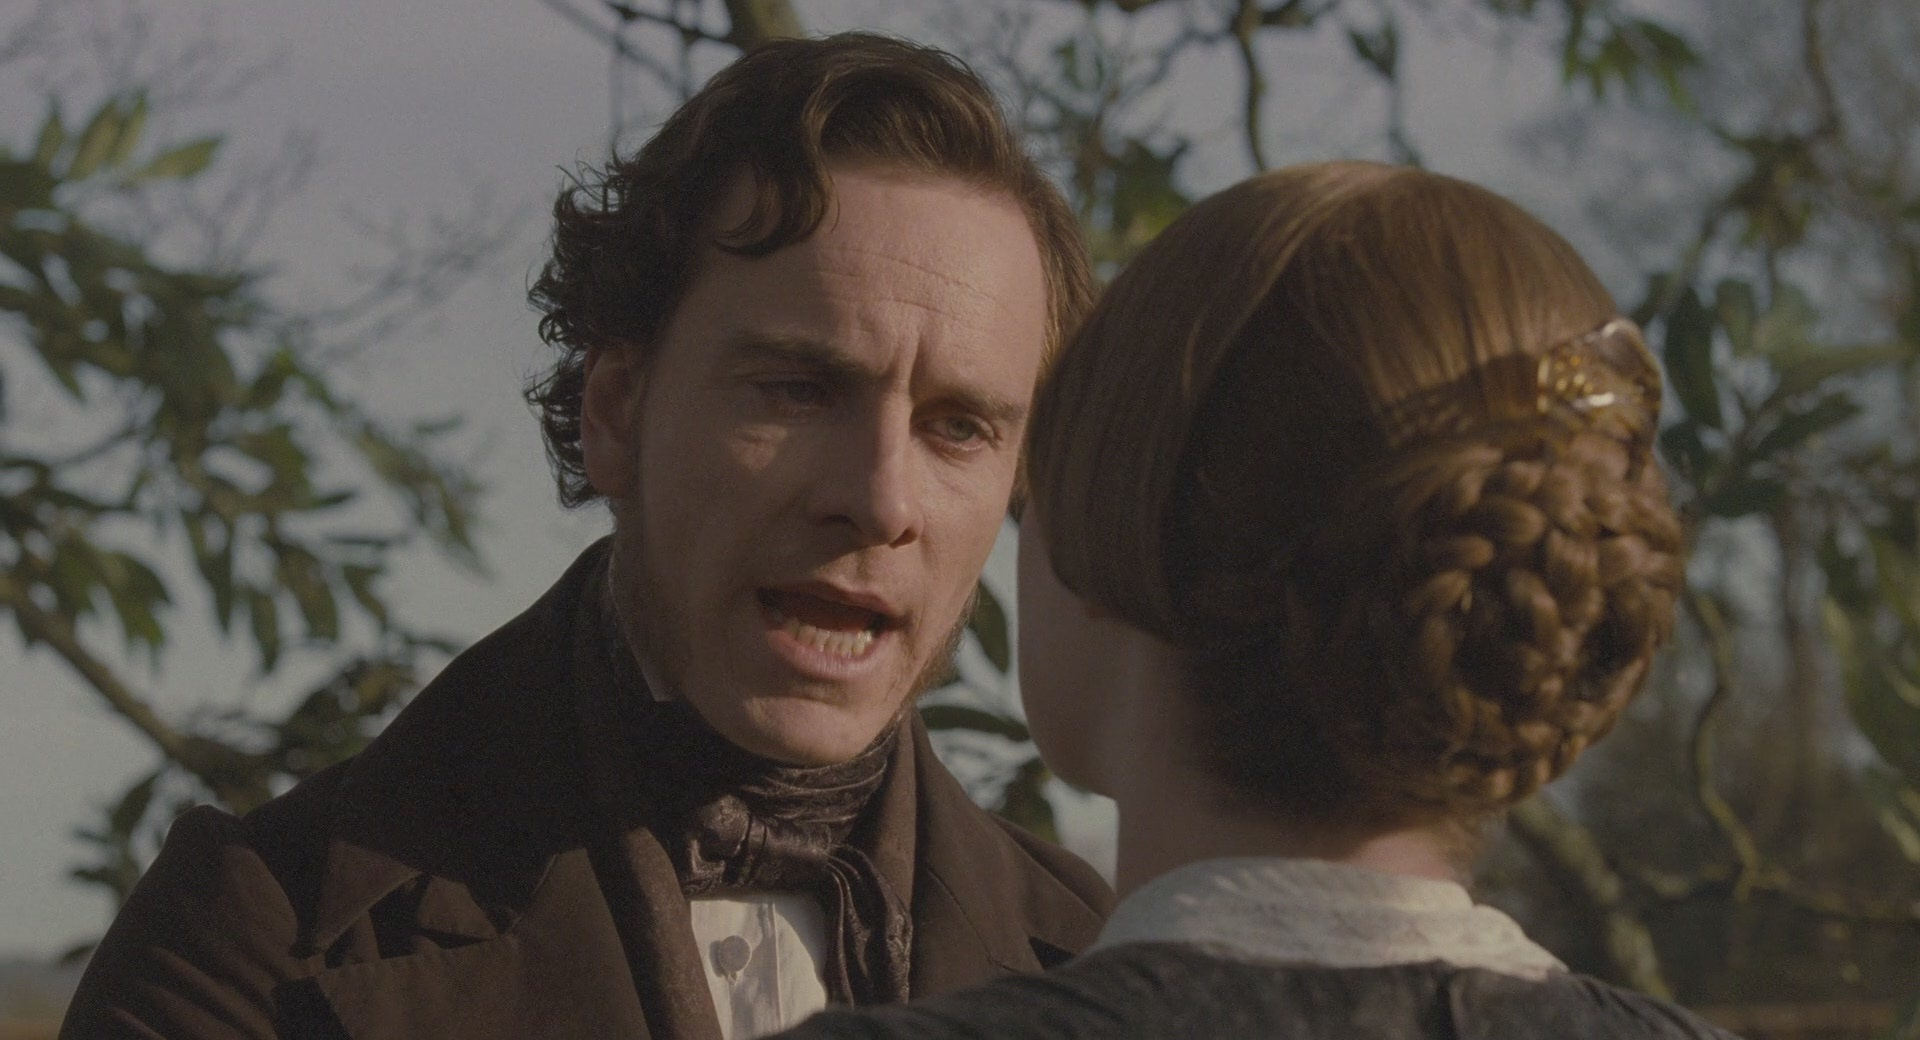 mr rochester interview jane eyre For many readers, the most absorbing chapters of jane eyre are xiii, xiv and xv, each of which contains a long conversation between jane and mr rochester these talks reveal rochester's unusual personality traits and establish an affinity between him and jane, in spite of the difference in their age and social class.